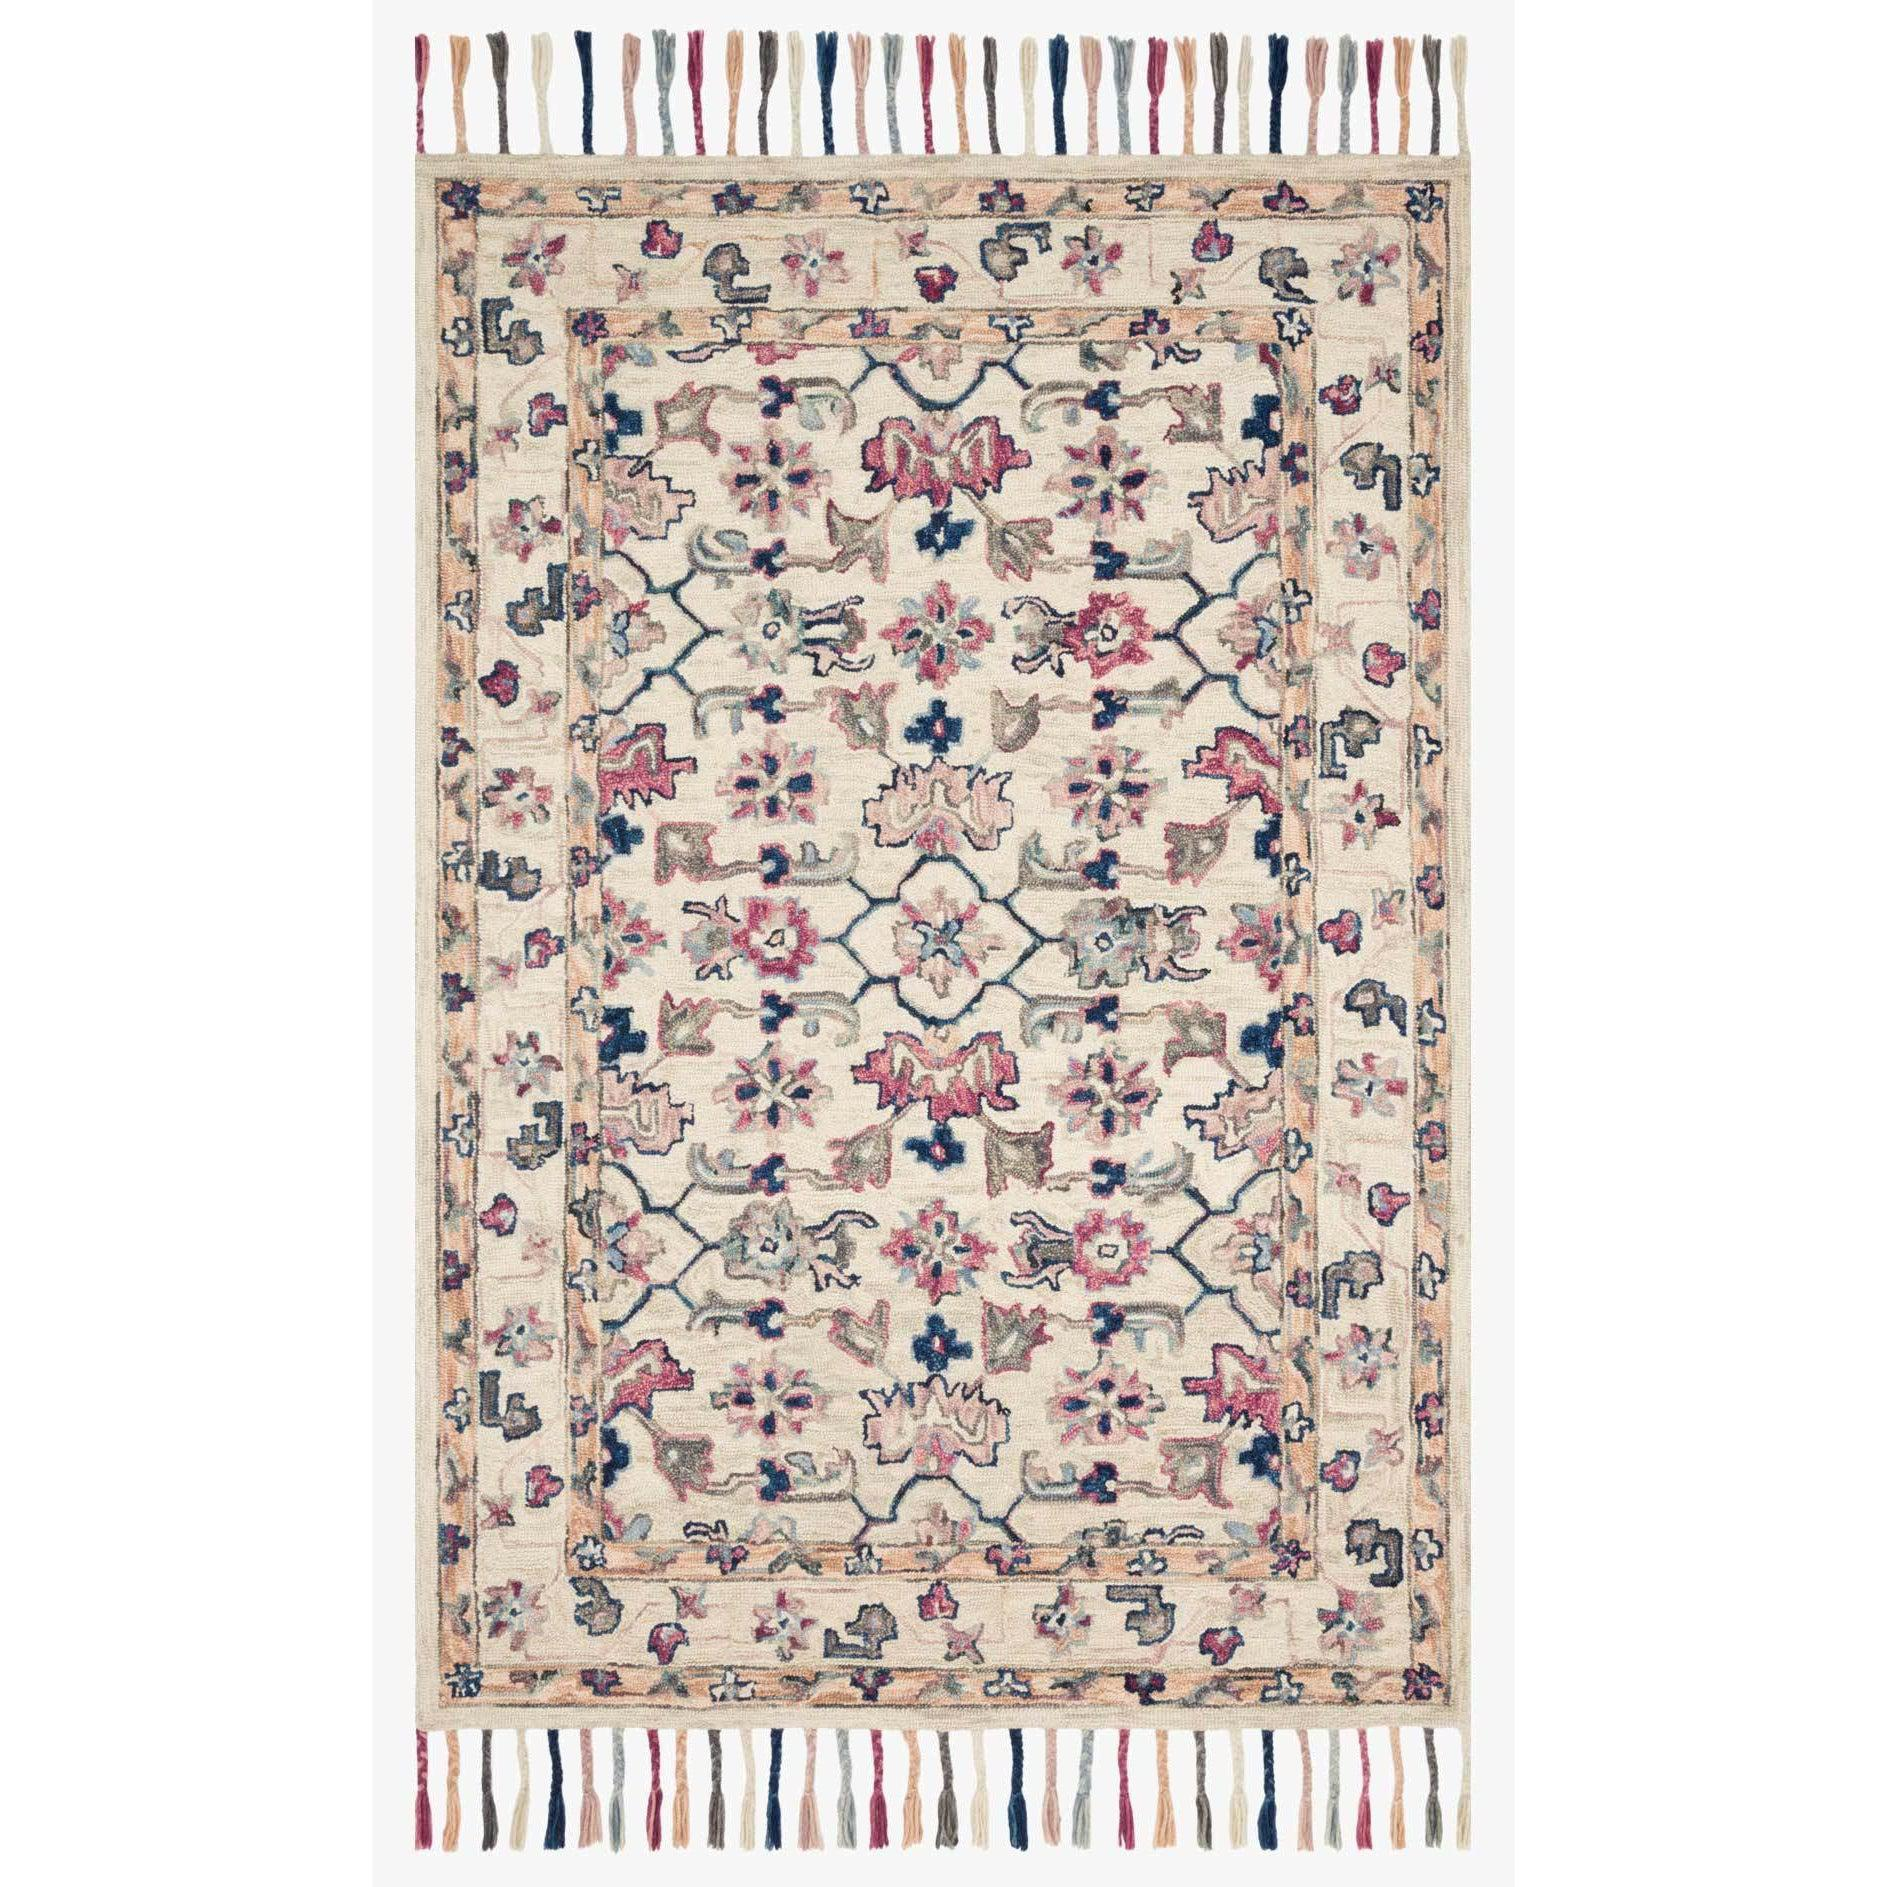 Elka Rugs by Loloi - ELK-02 - Ivory / Multi-Loloi Rugs-Blue Hand Home